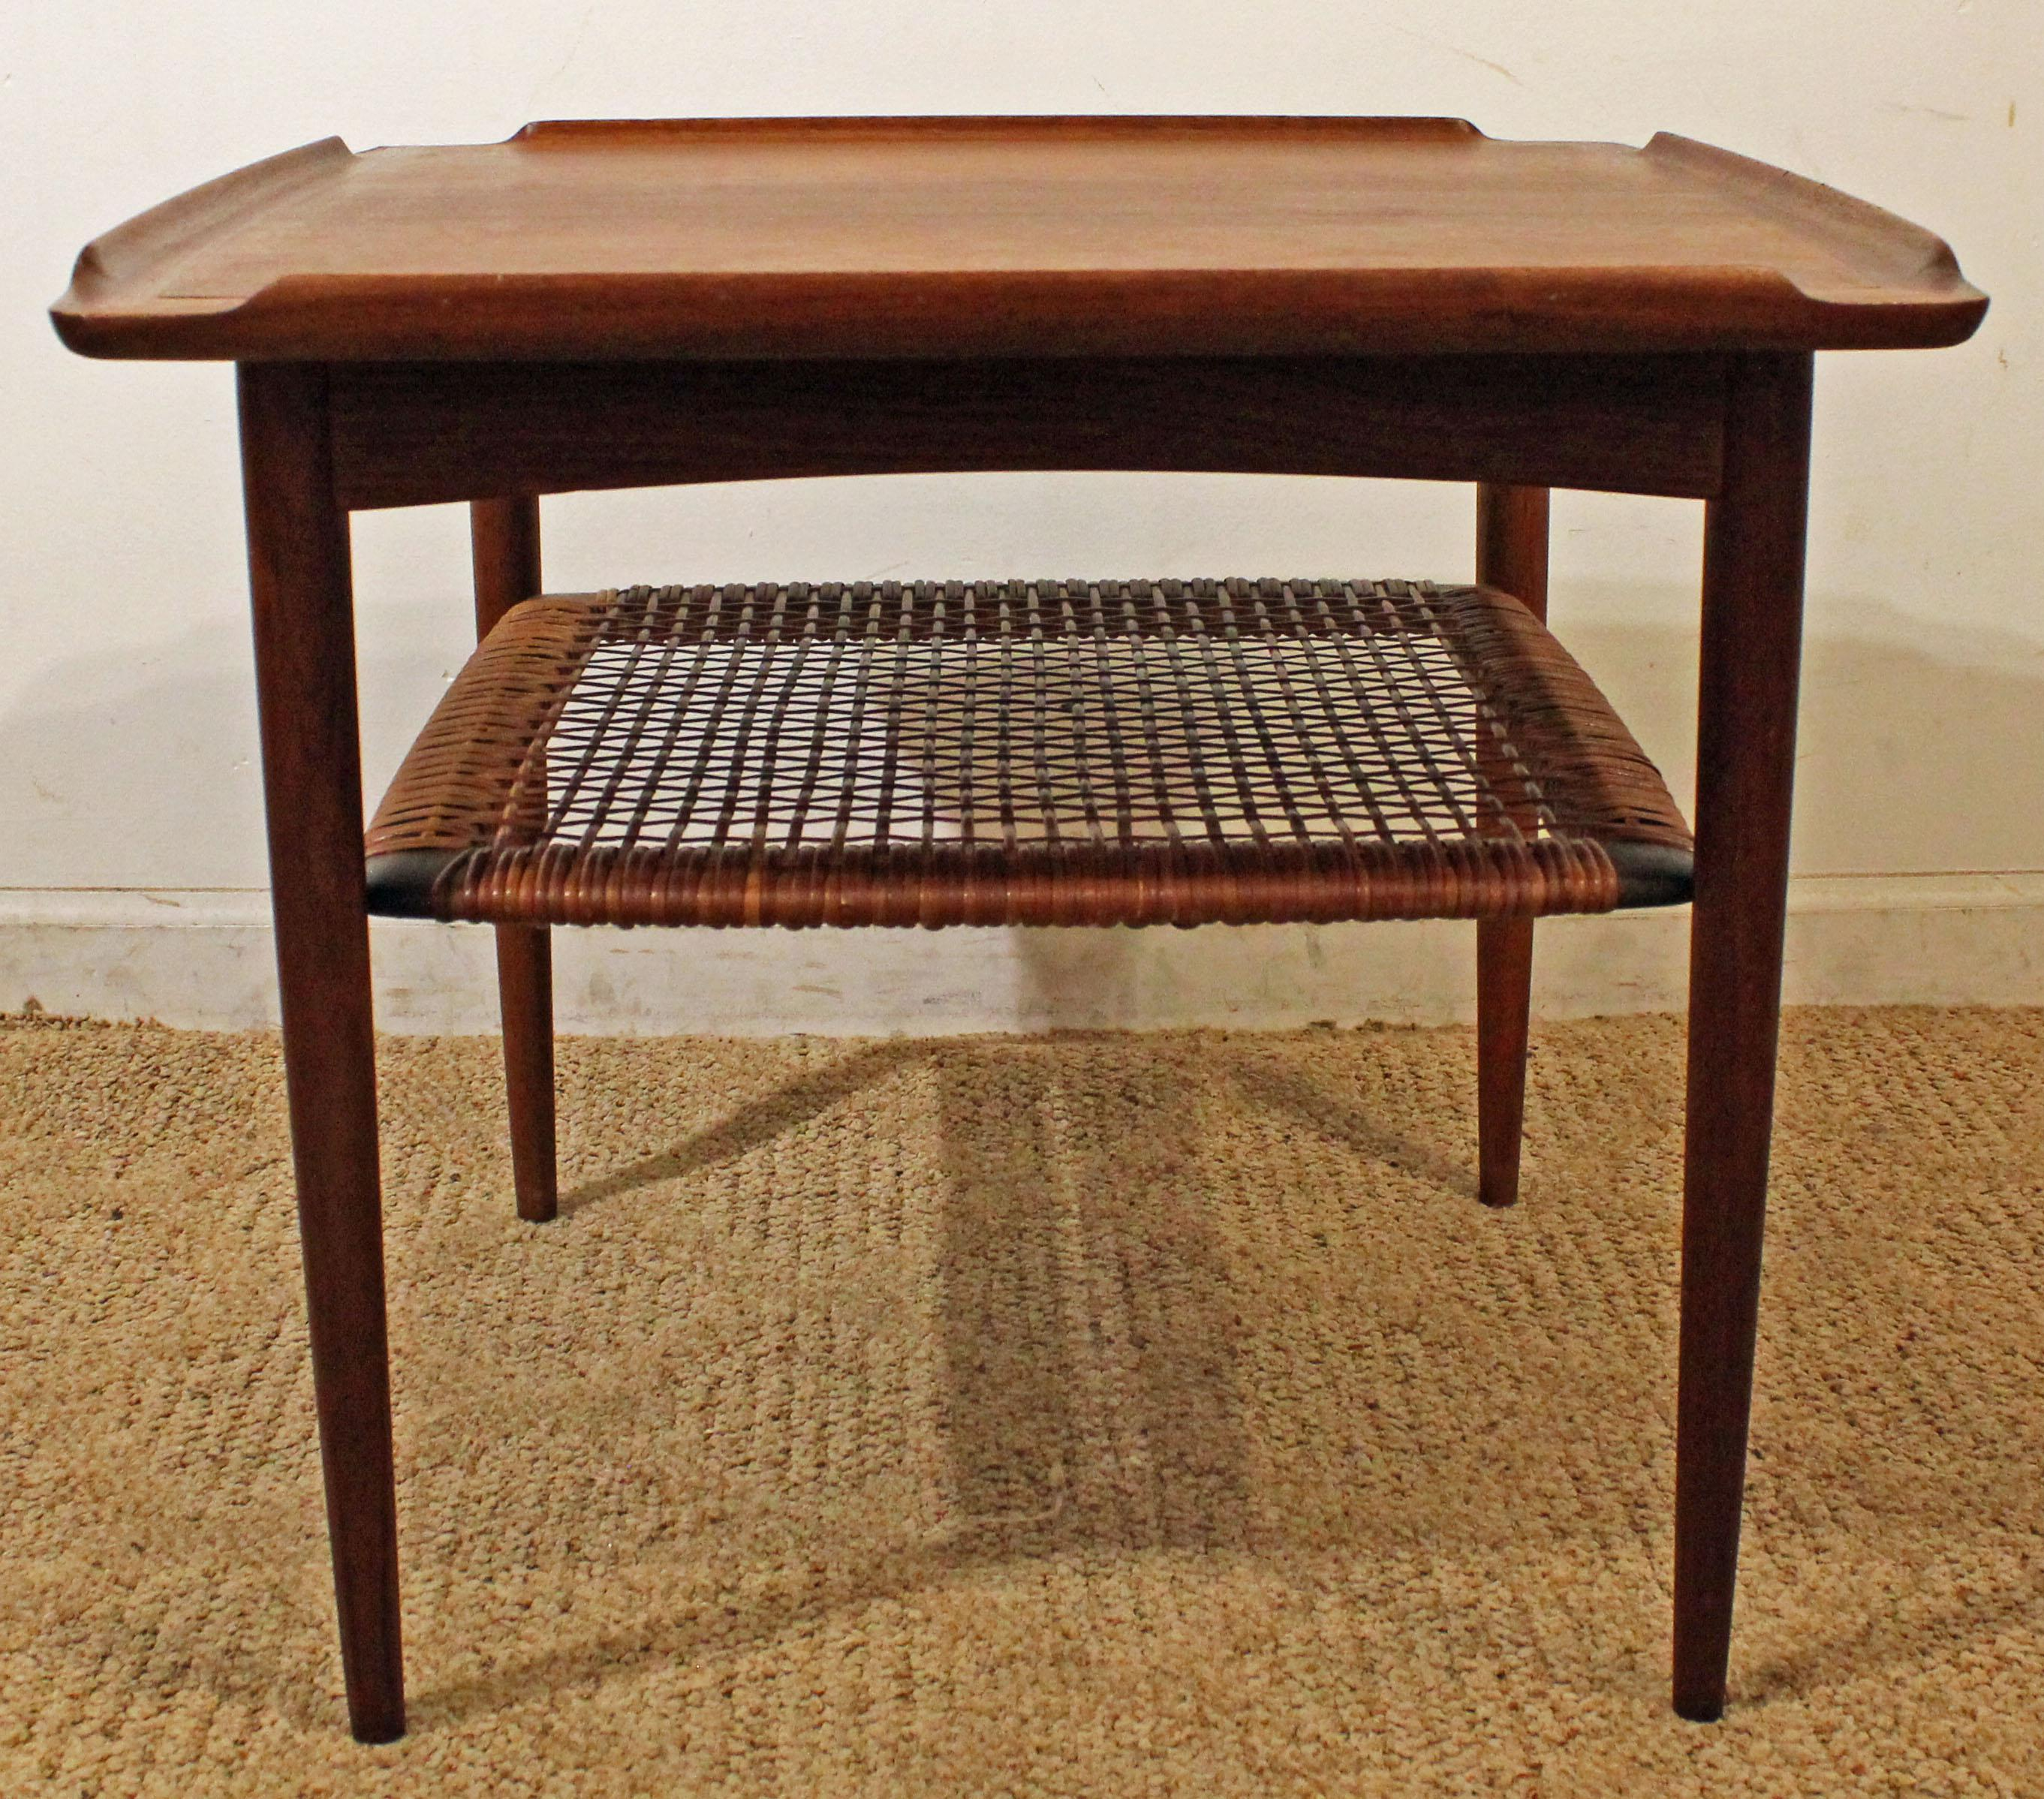 What A Find! Offered Is A Danish Modern End Table, Designed By Poul Jensen